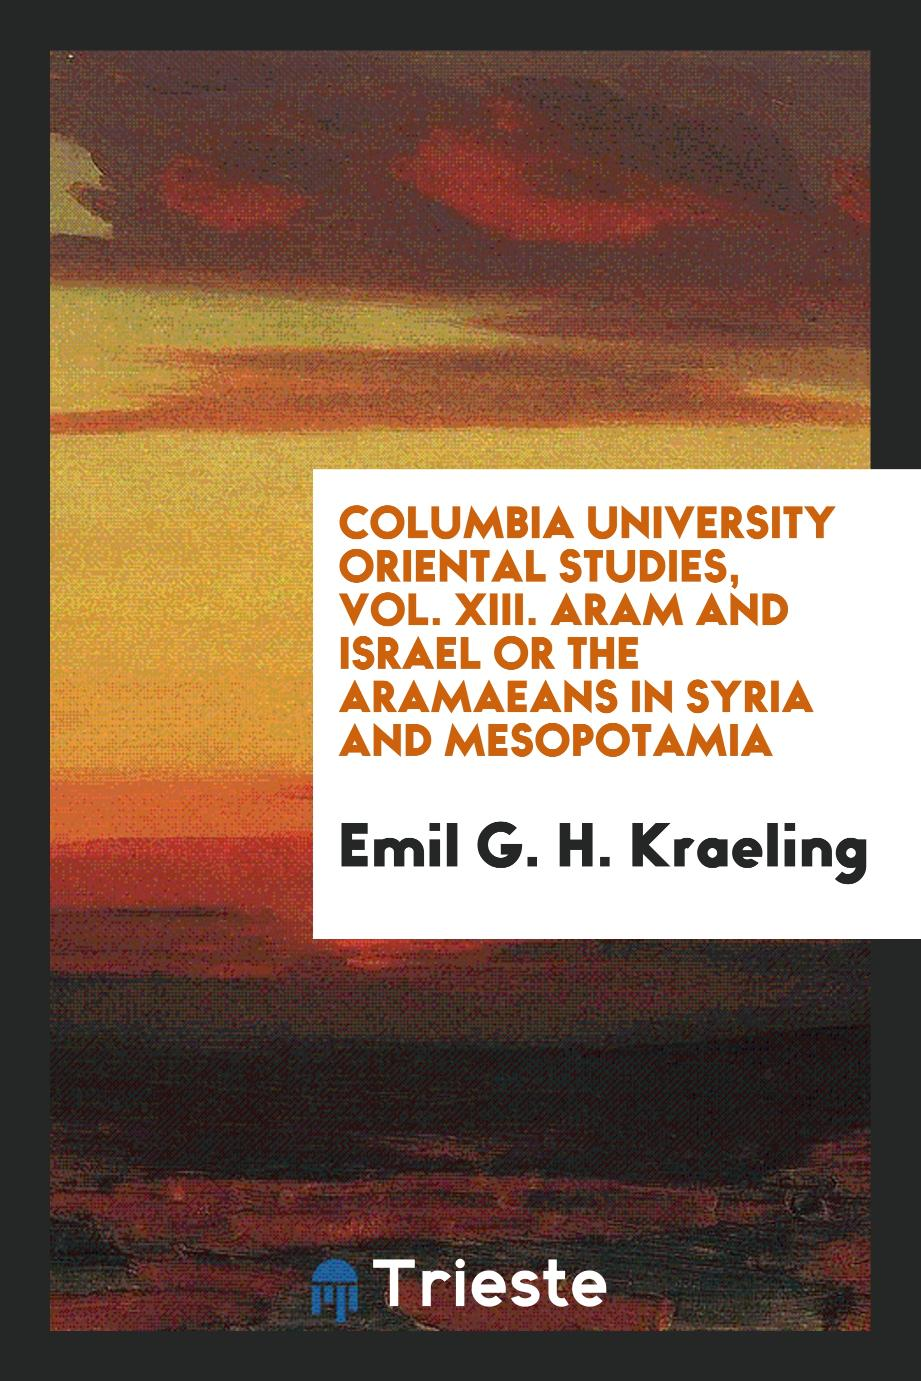 Columbia University Oriental Studies, Vol. XIII. Aram and Israel or the Aramaeans in Syria and Mesopotamia